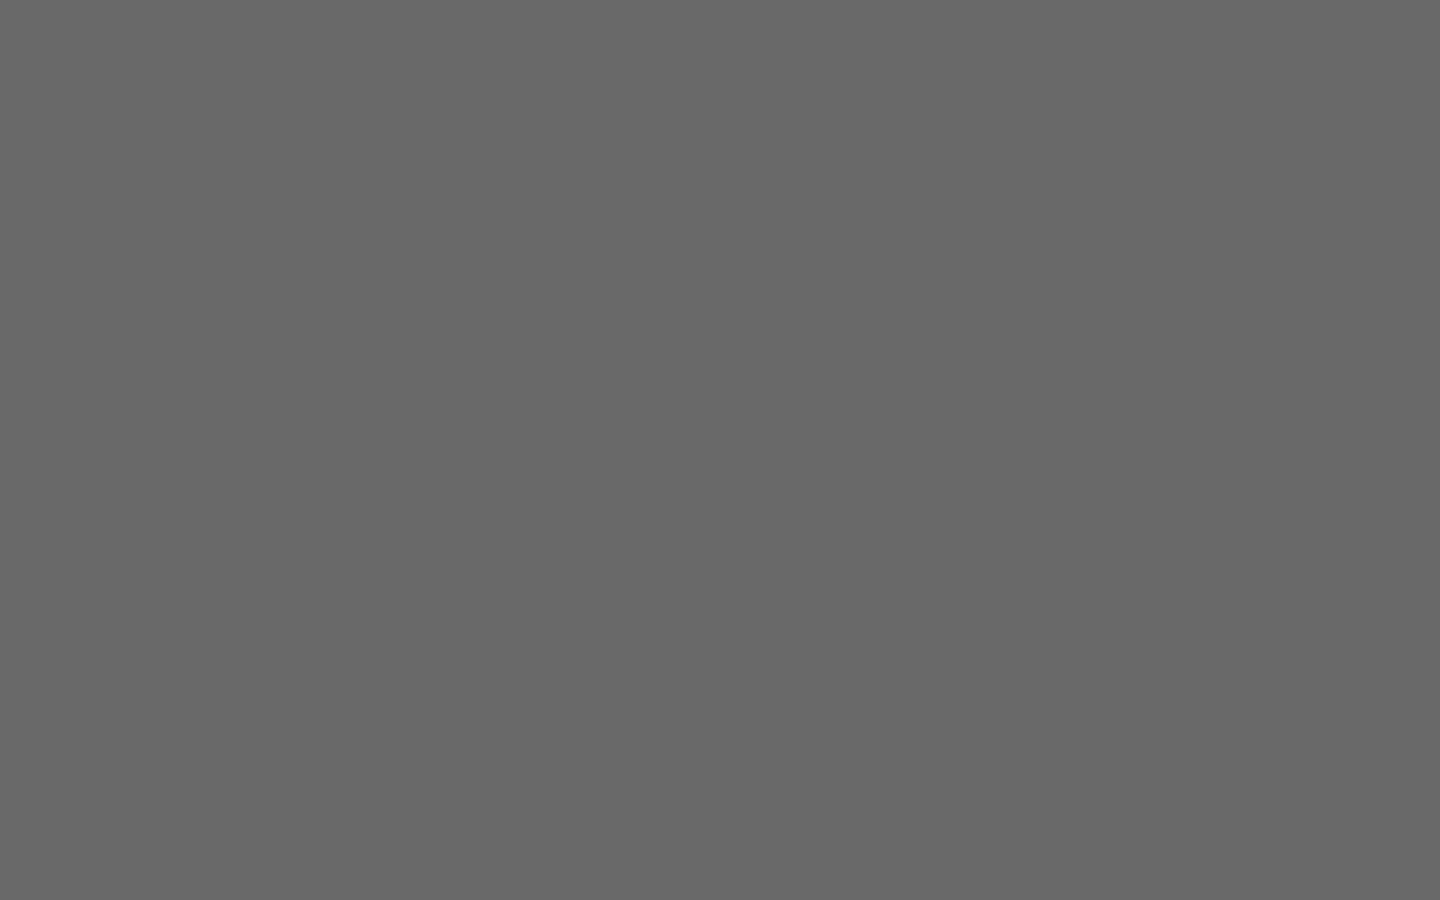 1440x900 Dim Gray Solid Color Background